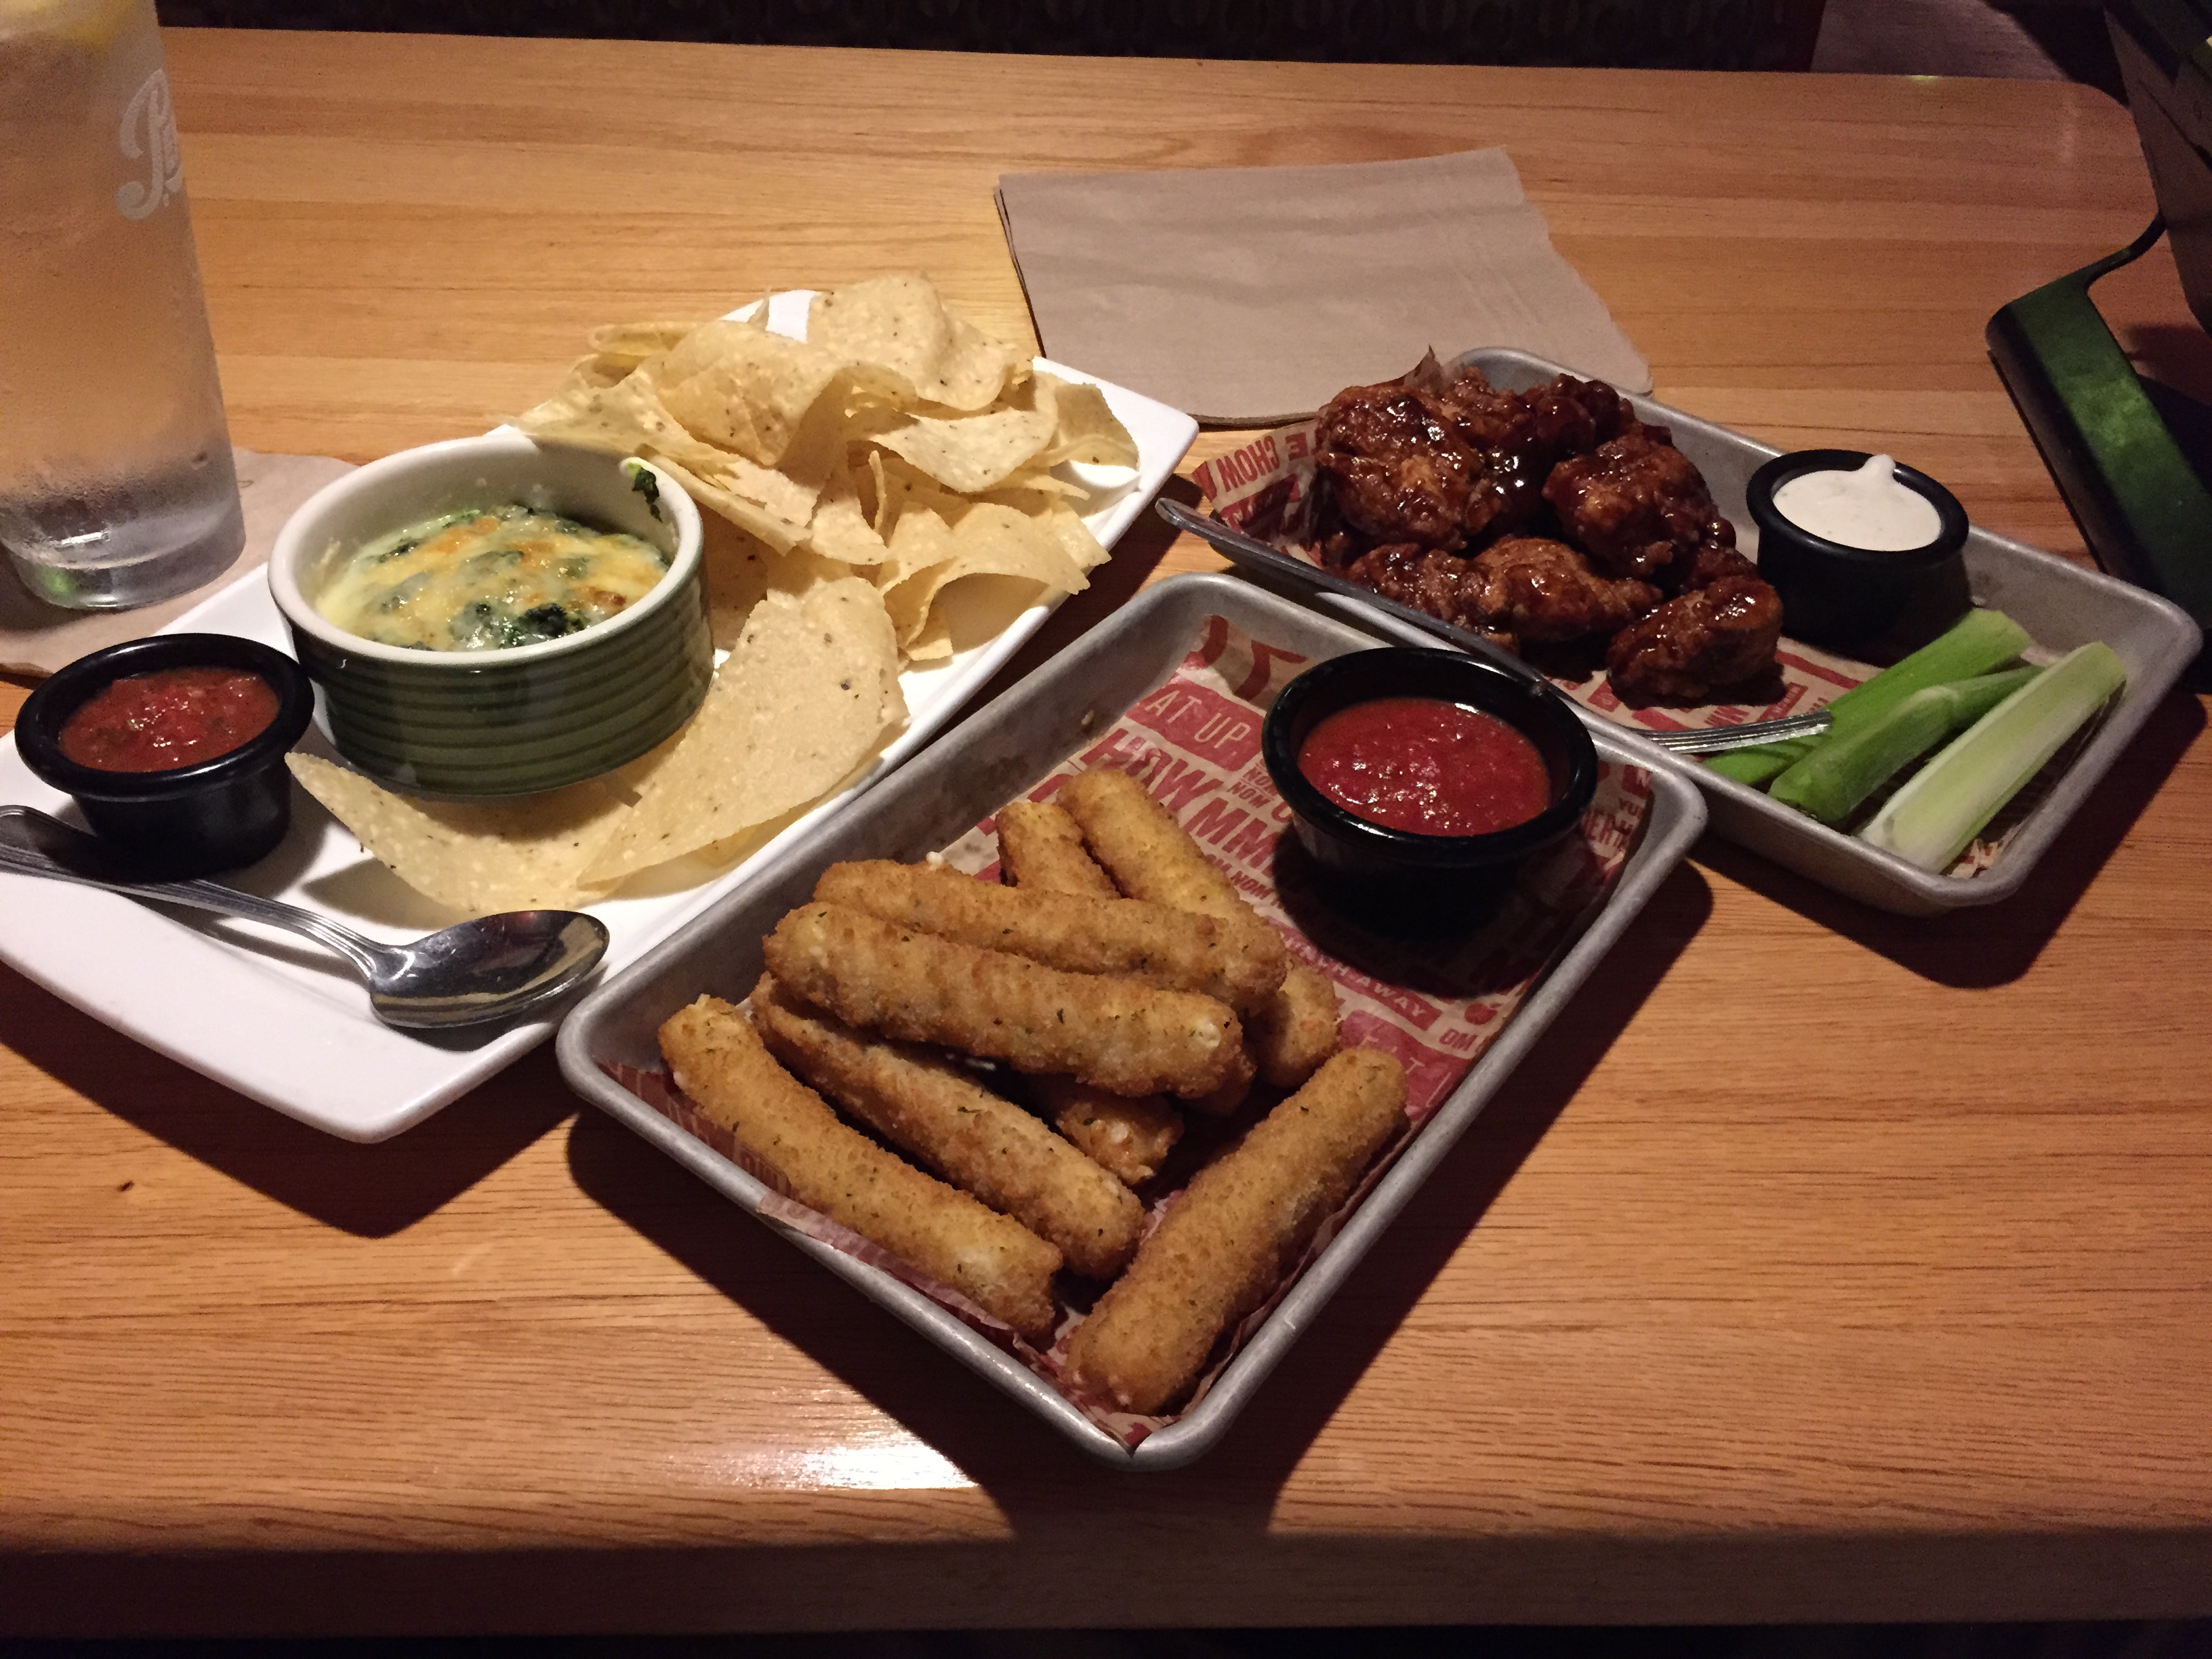 File 2017 08 31 21 23 34 Appetizers Chips With Spinach Artichoke Dip Mozzarella Sticks And Honey Bbq Buffalo Wings At The Applebee S On Virginia State Route 7 Harry Byrd Highway In Countryside Loudoun County Virginia Jpg